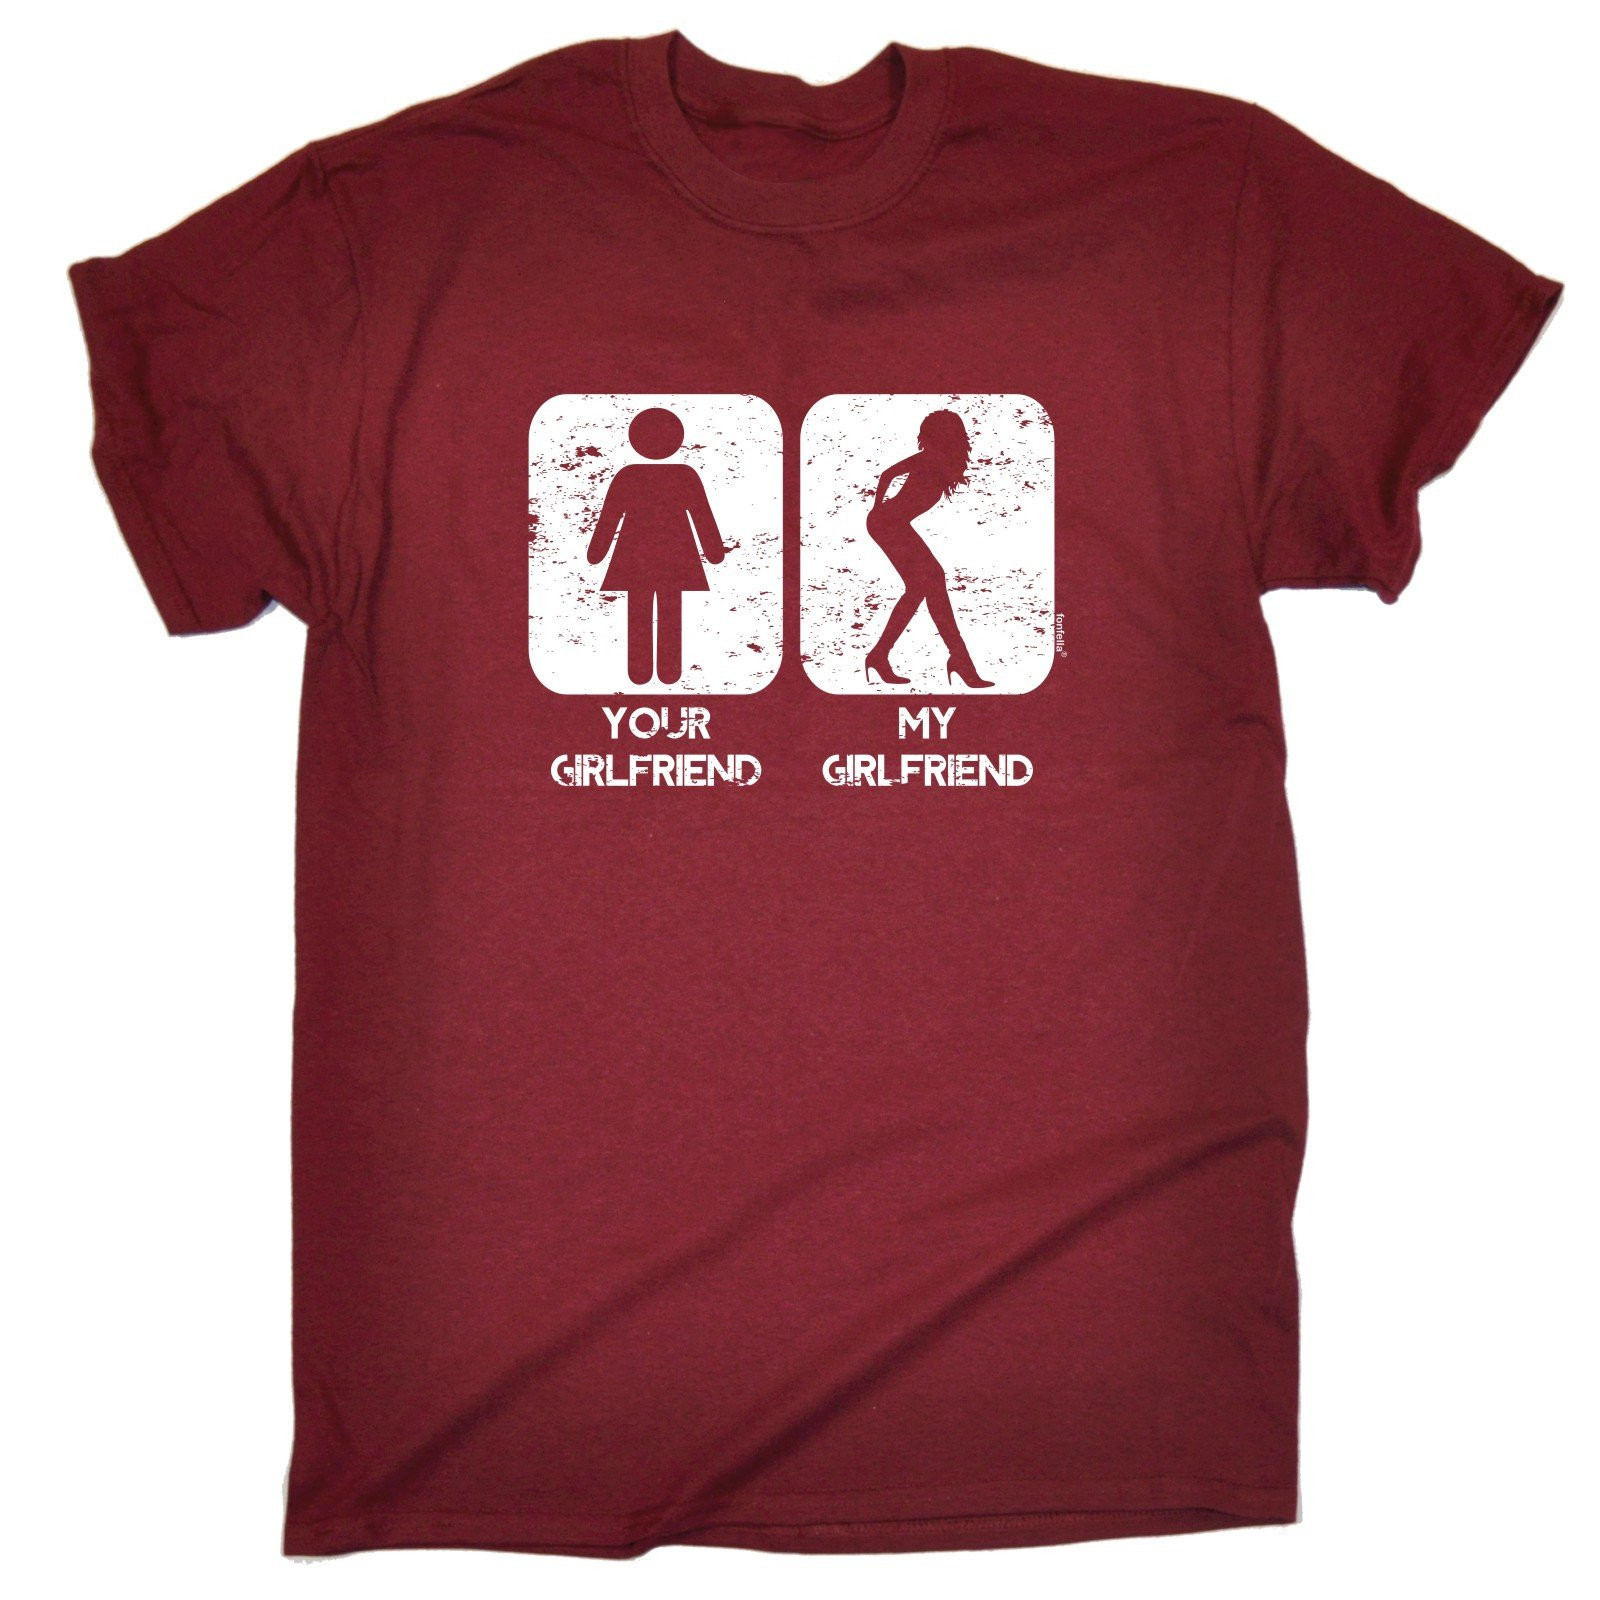 Best ideas about Funny Birthday T Shirts . Save or Pin YOUR GIRLFRIEND MY GIRLFRIEND T SHIRT tee partner funny Now.